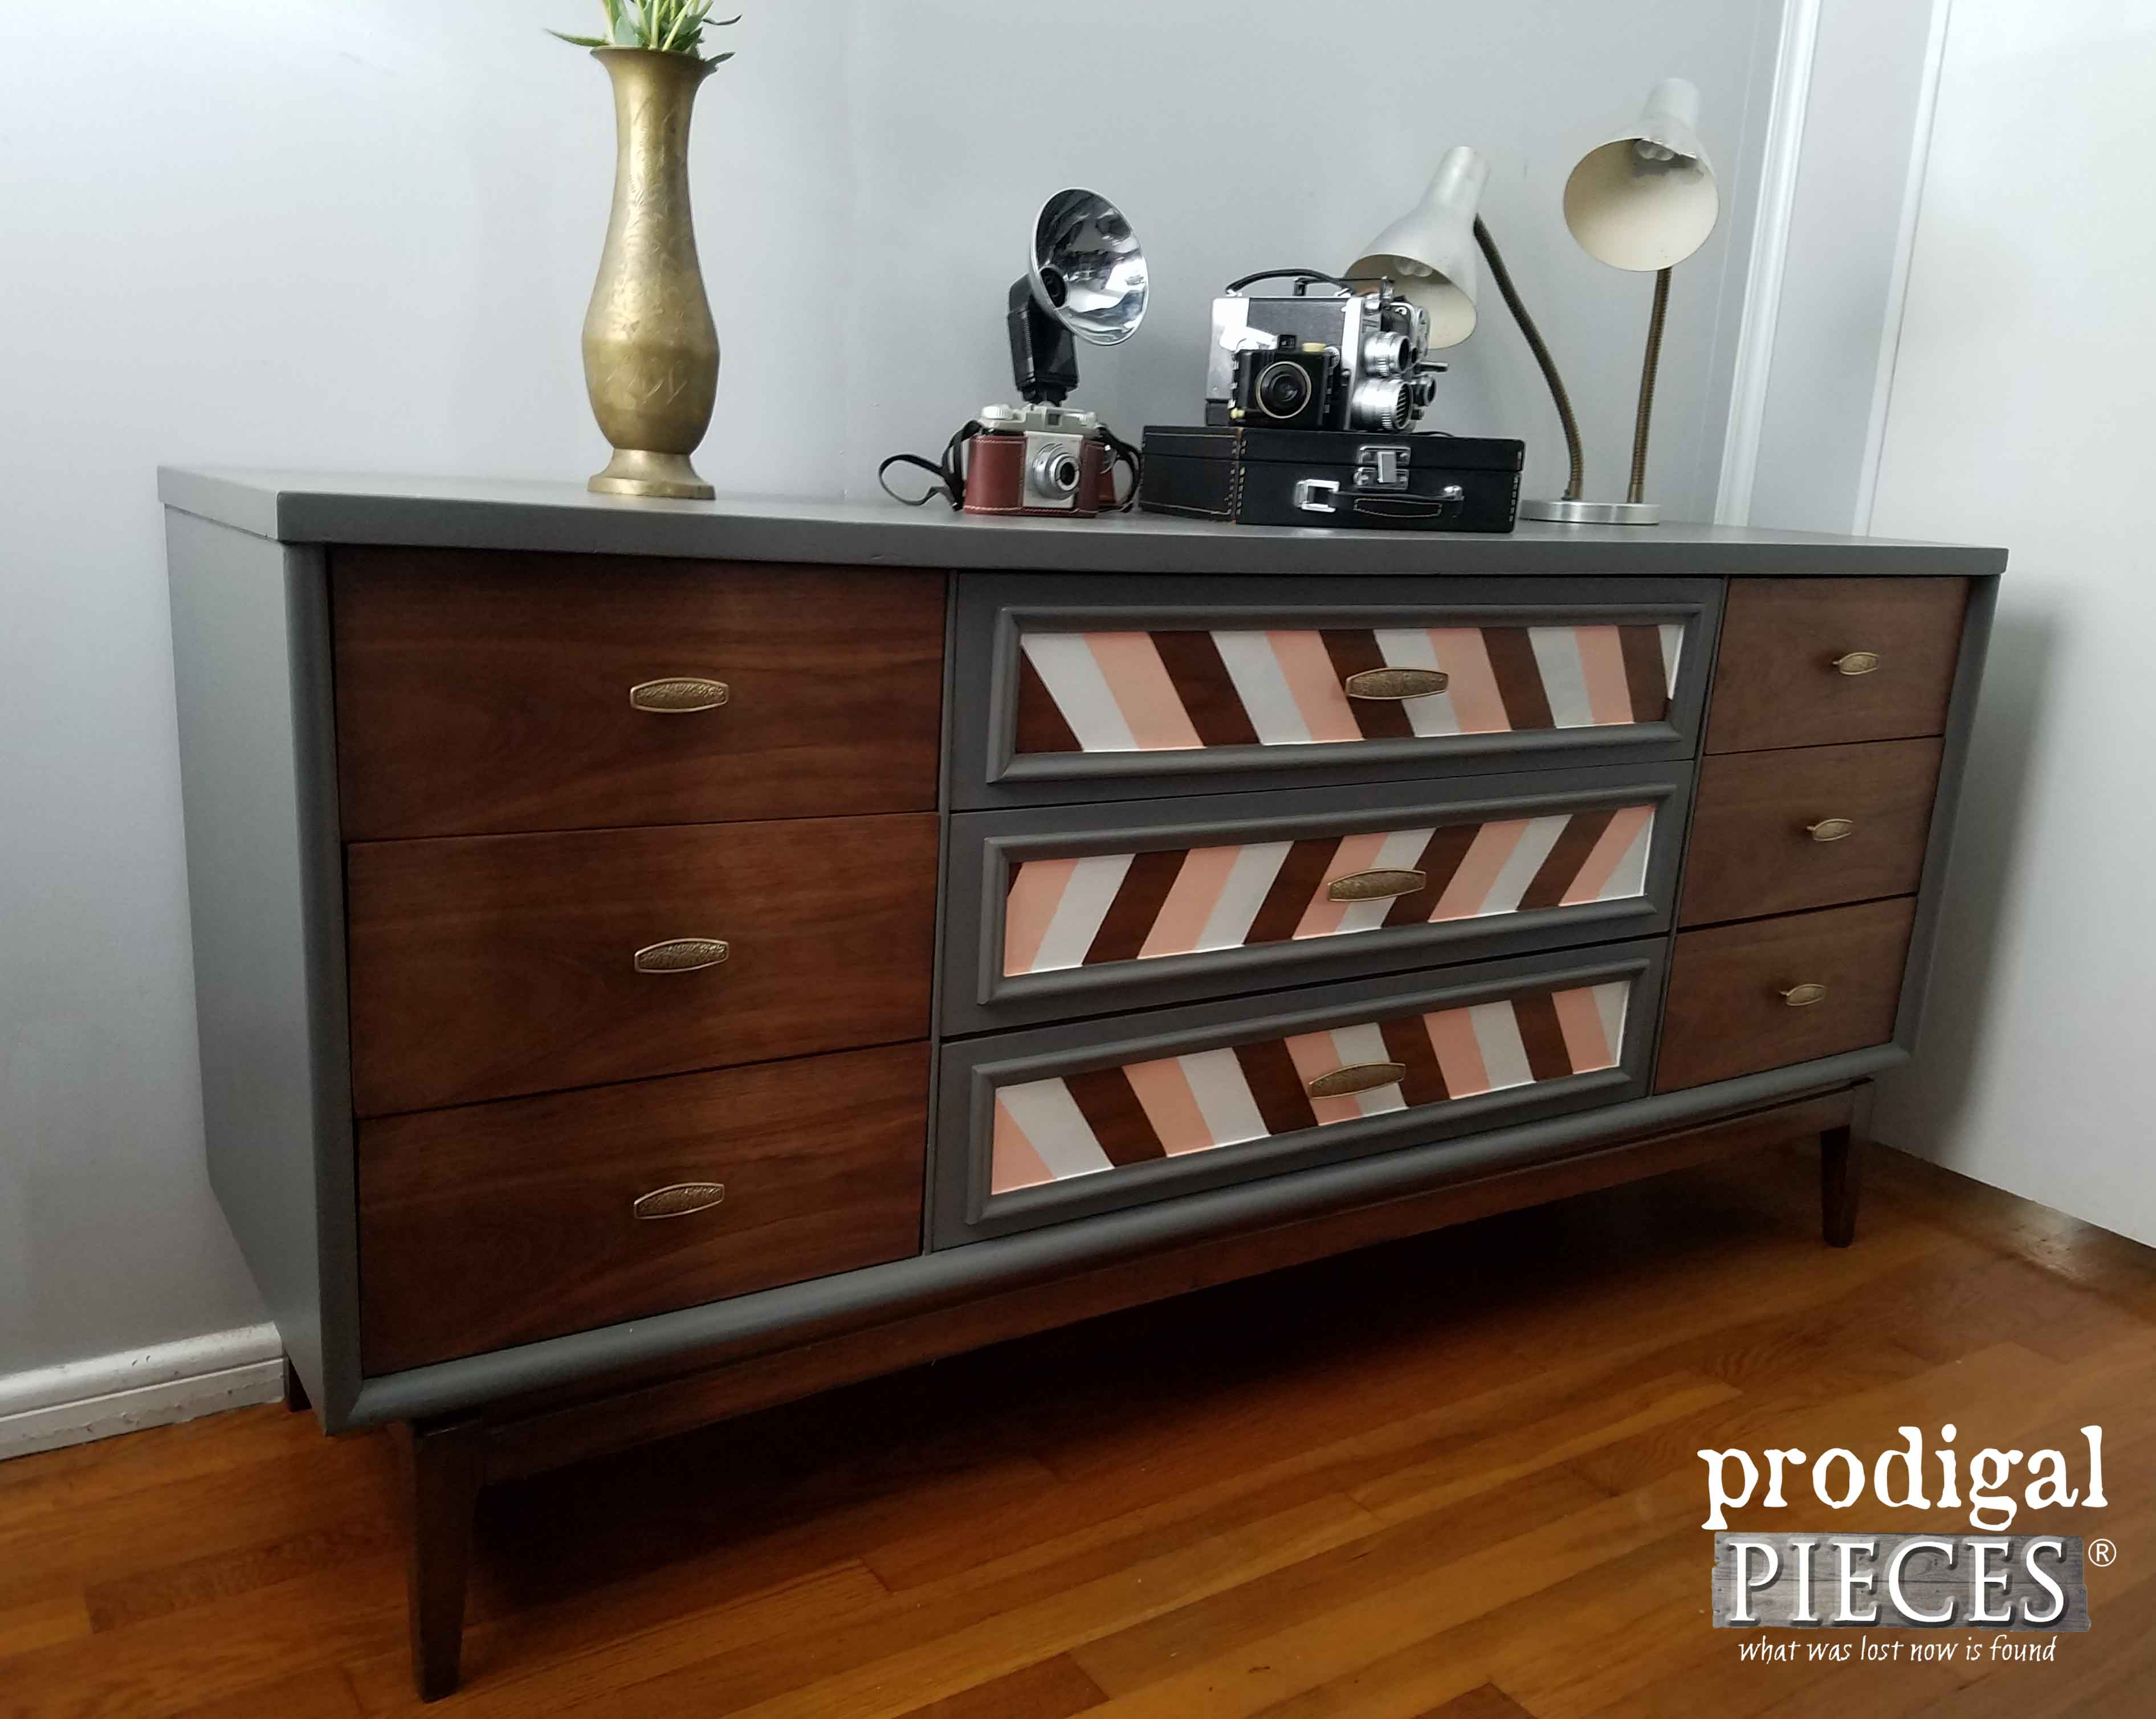 Vintage Mid Century Modern Dresser With Chic Look By Prodigal Pieces Www Prodigalpieces